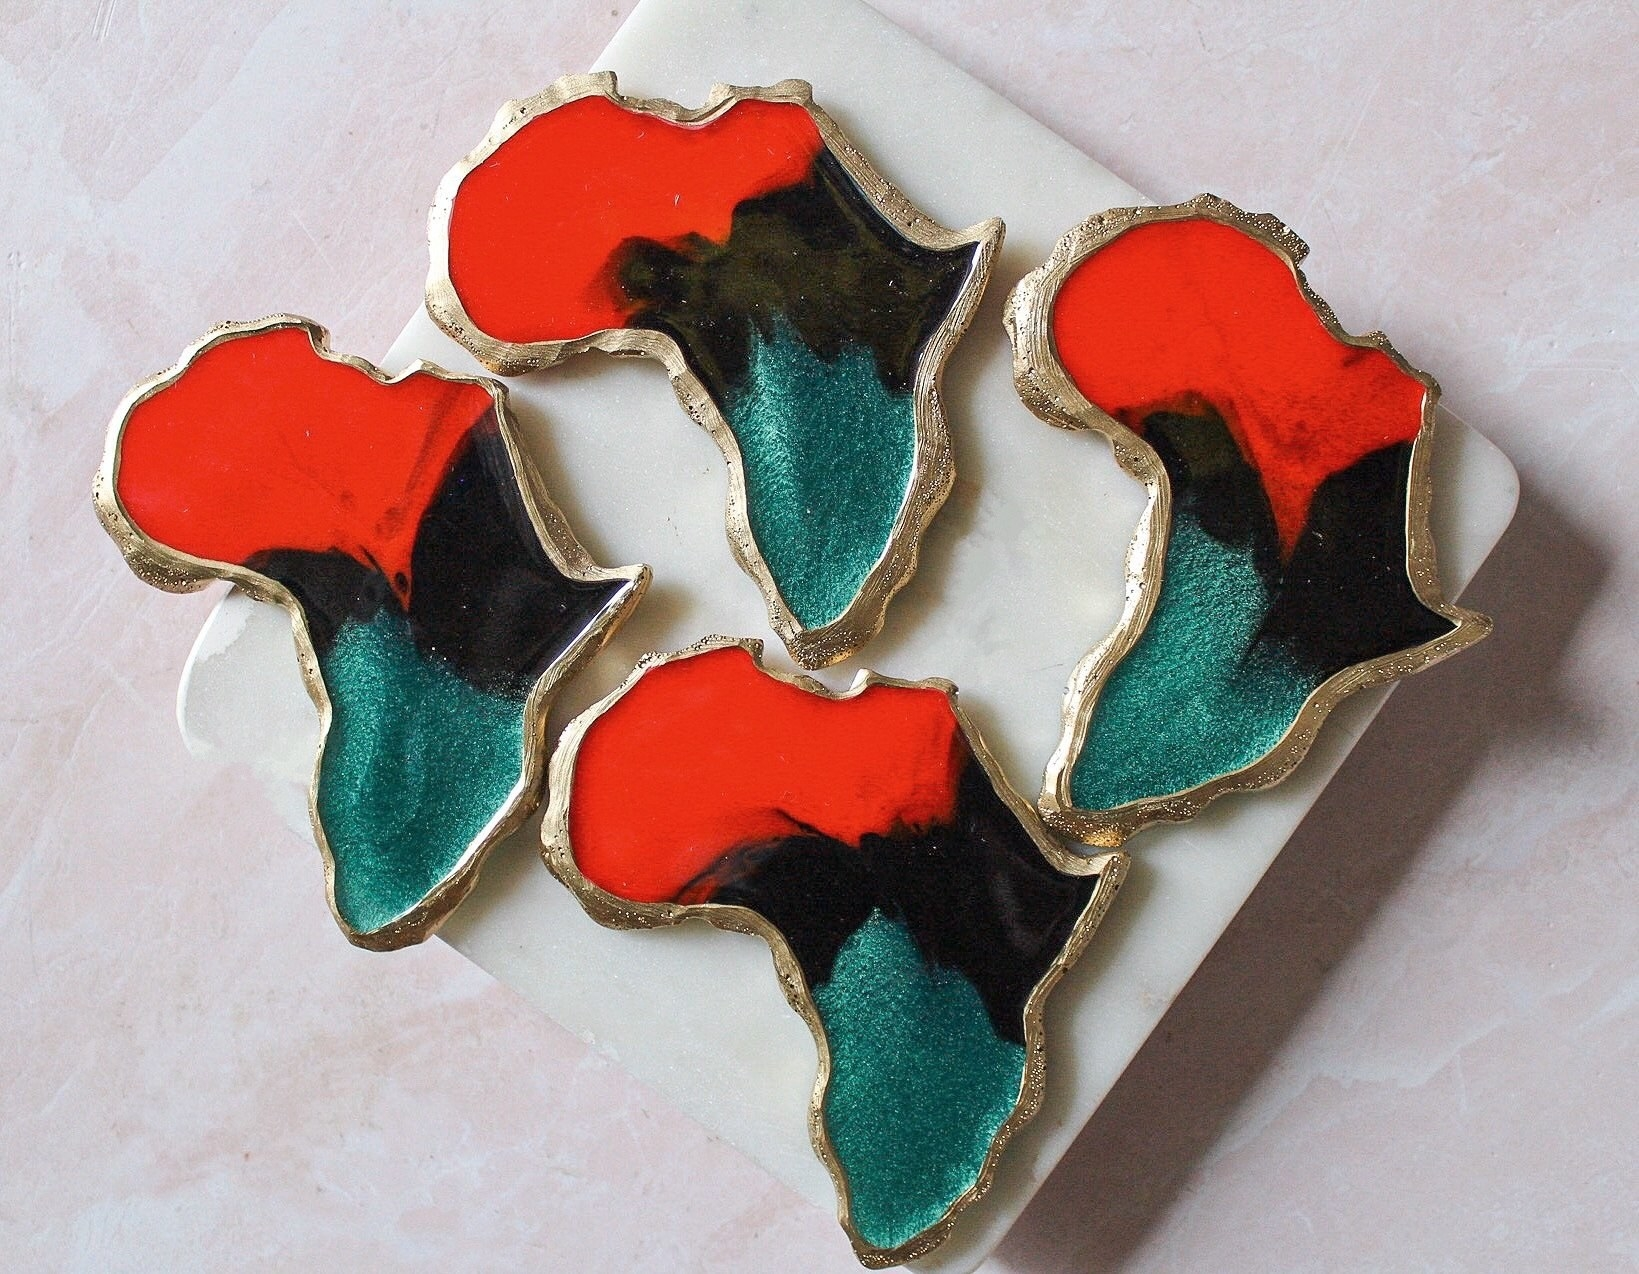 Four coasters red, black, and green coasters shaped like Africa